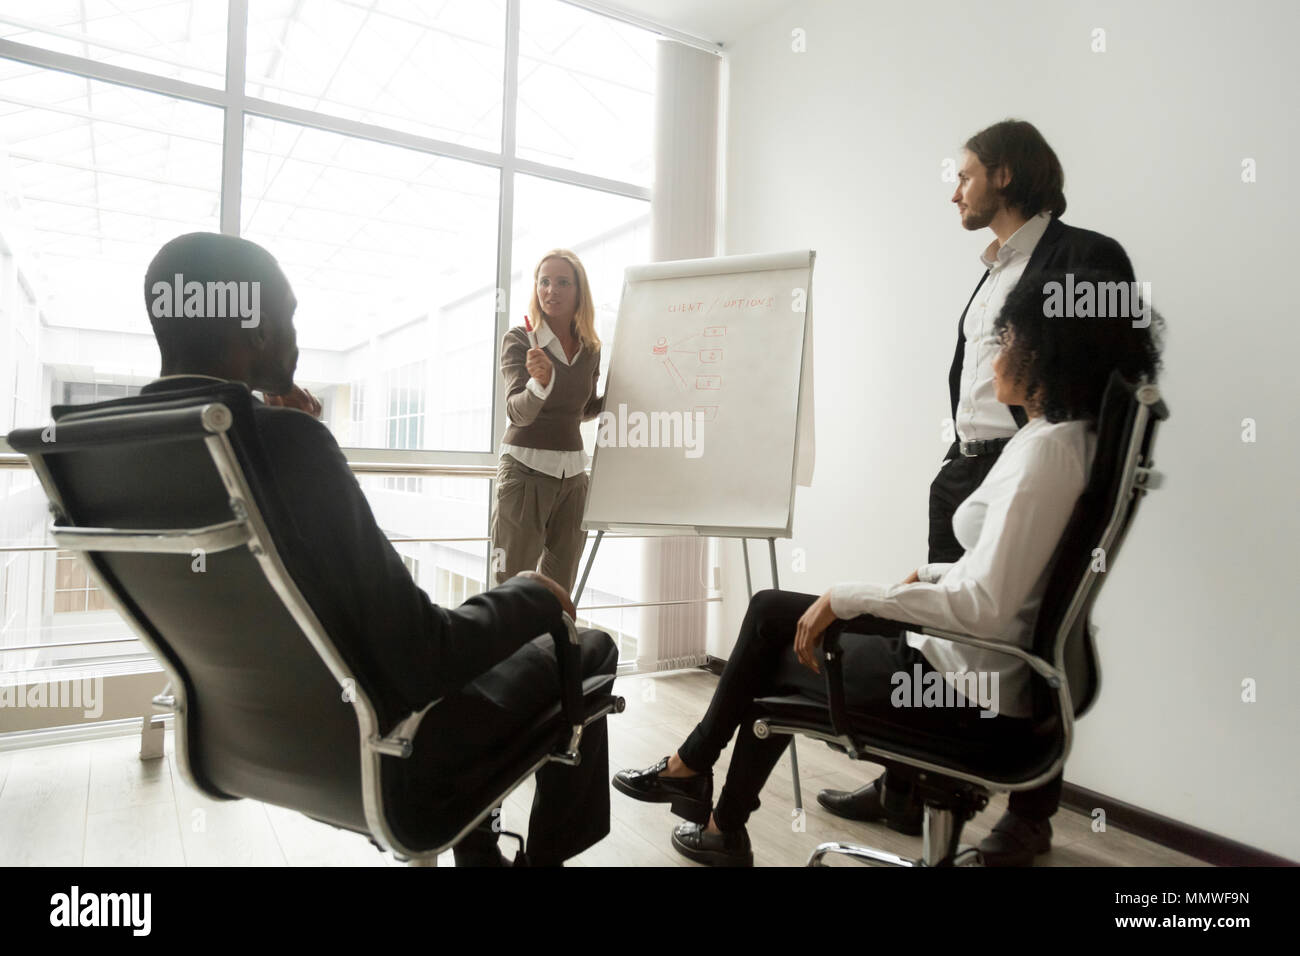 African business team listening to speakers giving presentation  - Stock Image